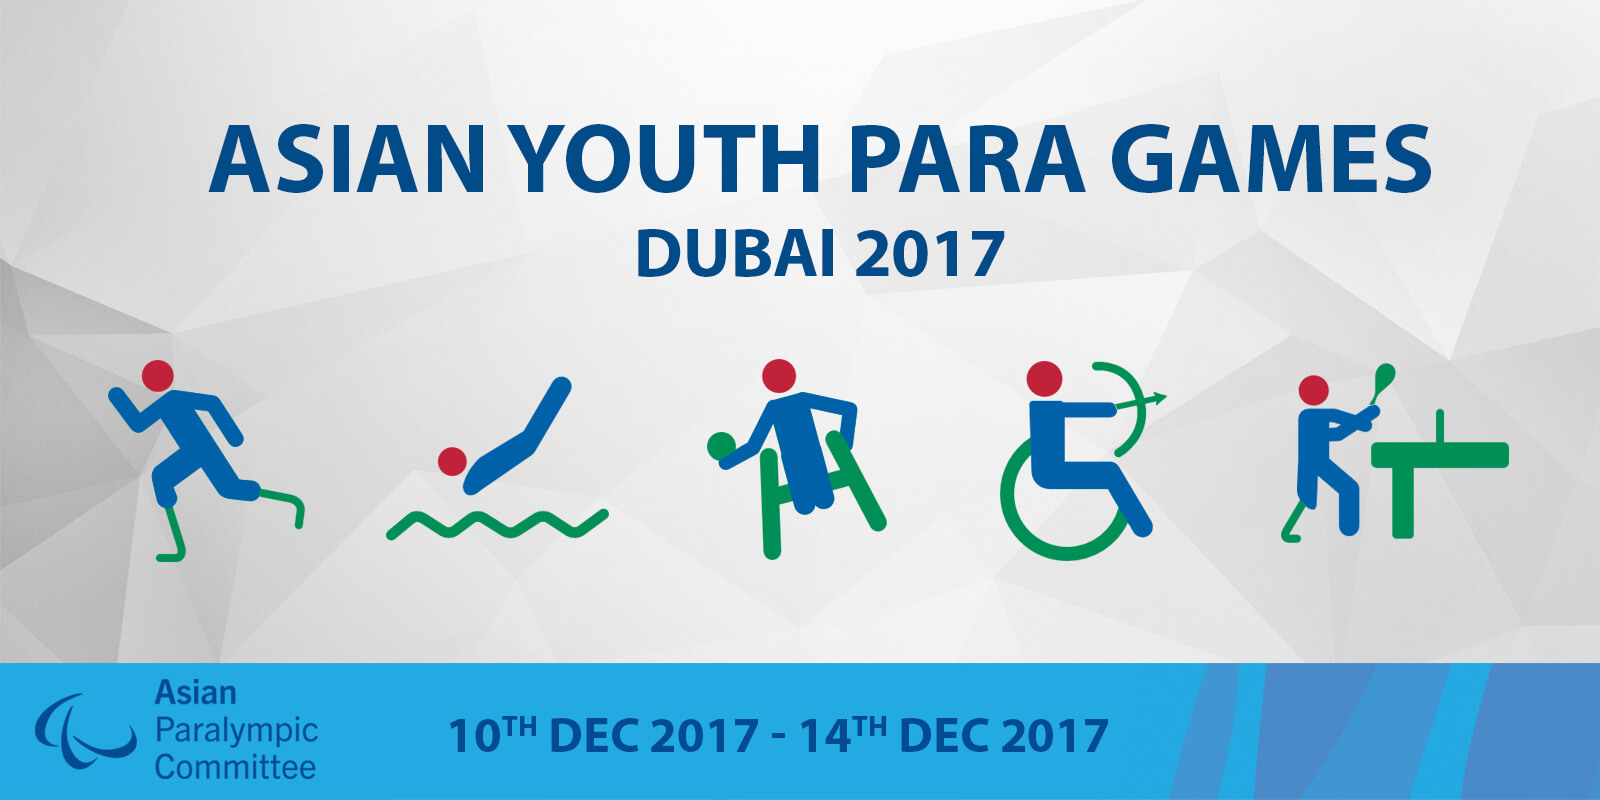 DUBAI 2017 ASIAN YOUTH PARA GAMES